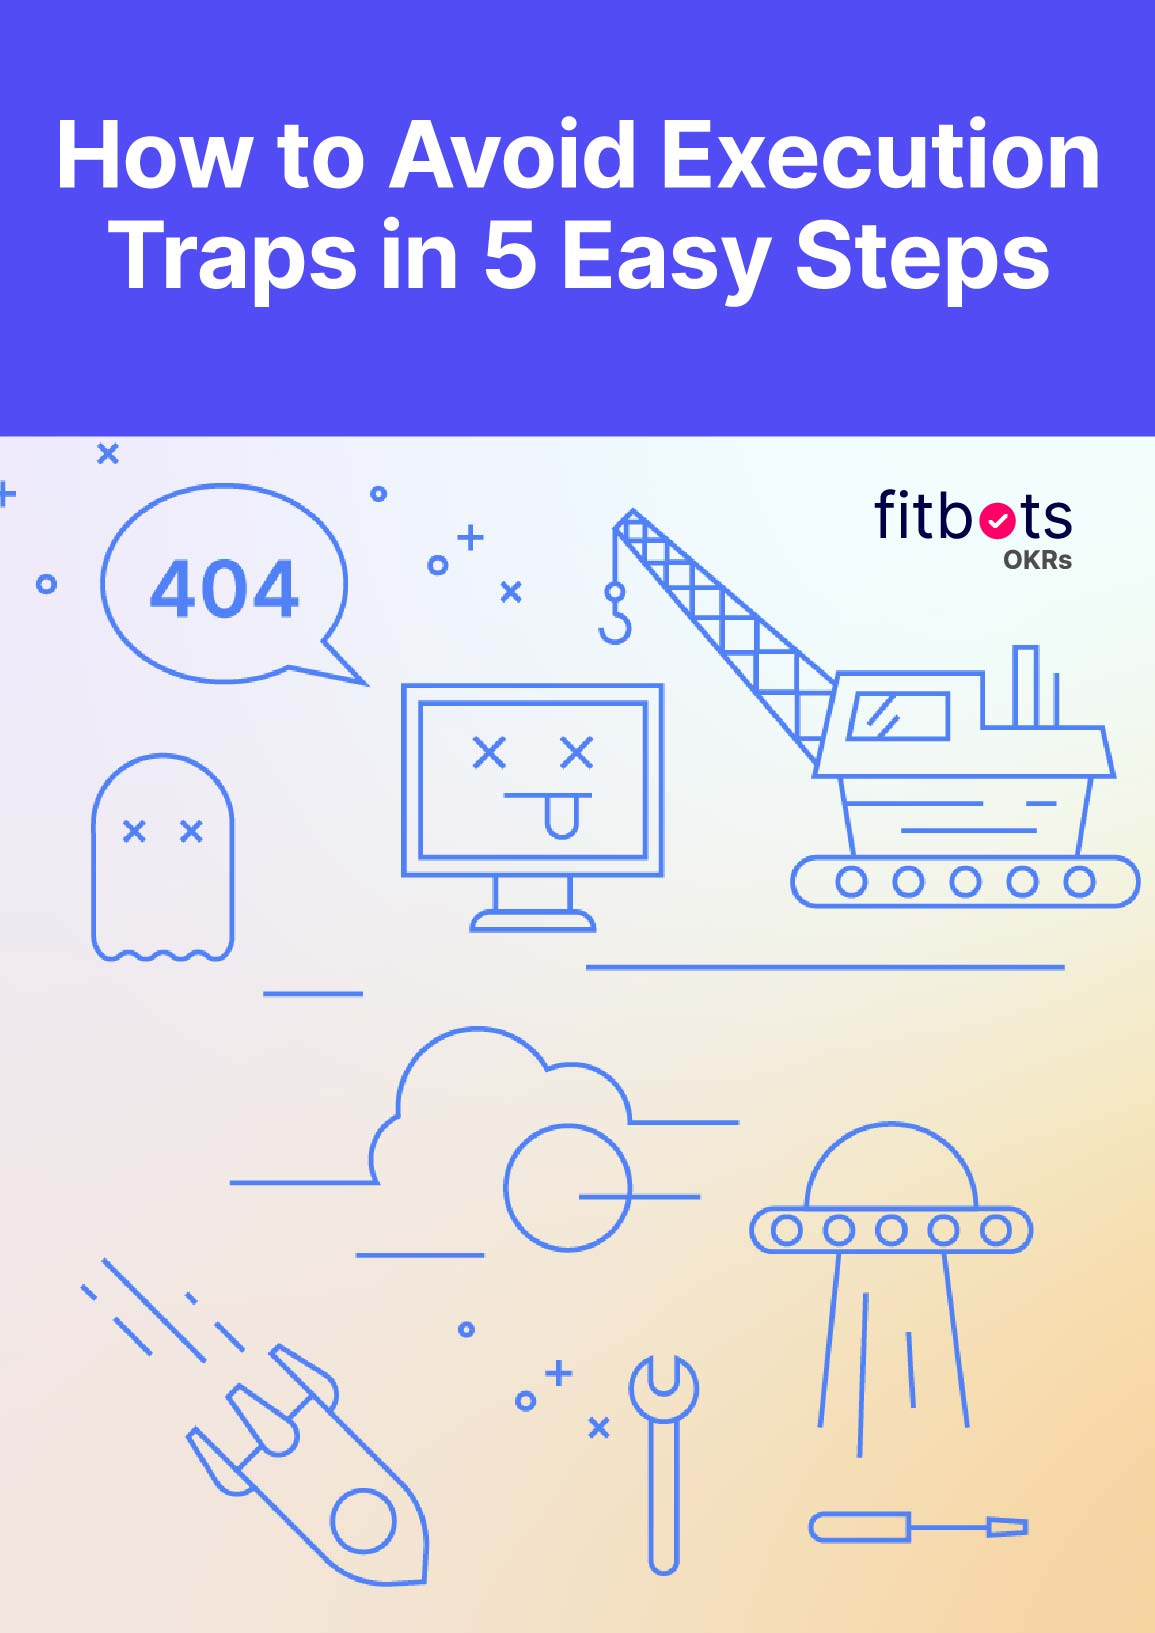 How to Avoid Execution Traps in 5 Easy Steps?